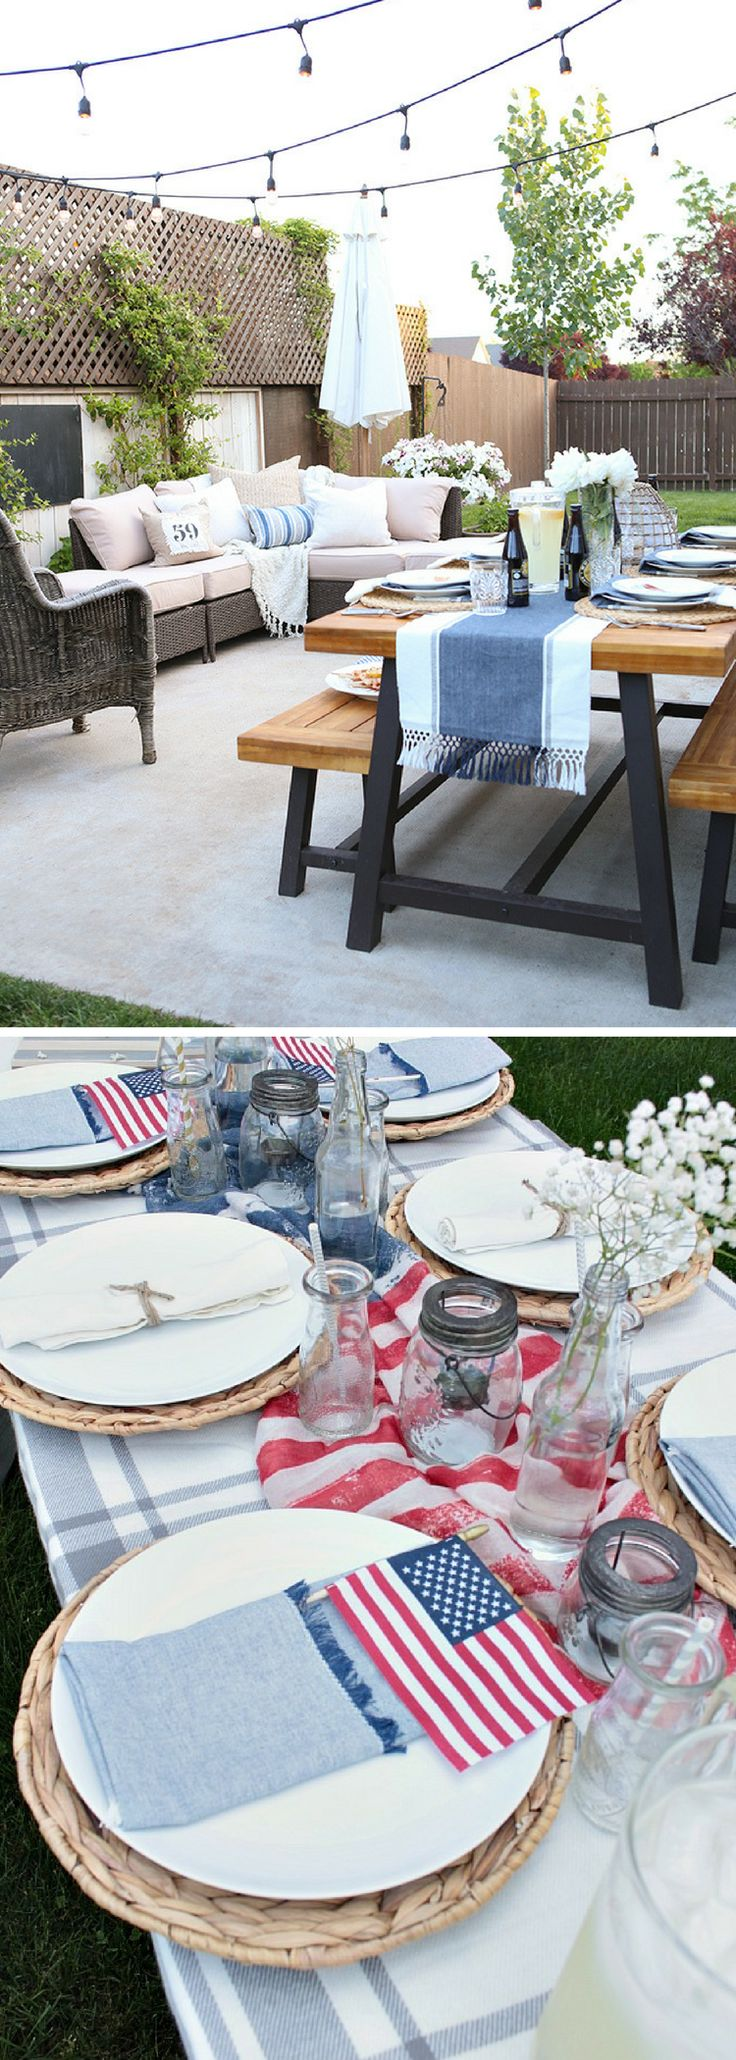 Elevate your summer cookout with these 15 easy, yet classy decor and presentation ideas! Perfect for the 4th of July.